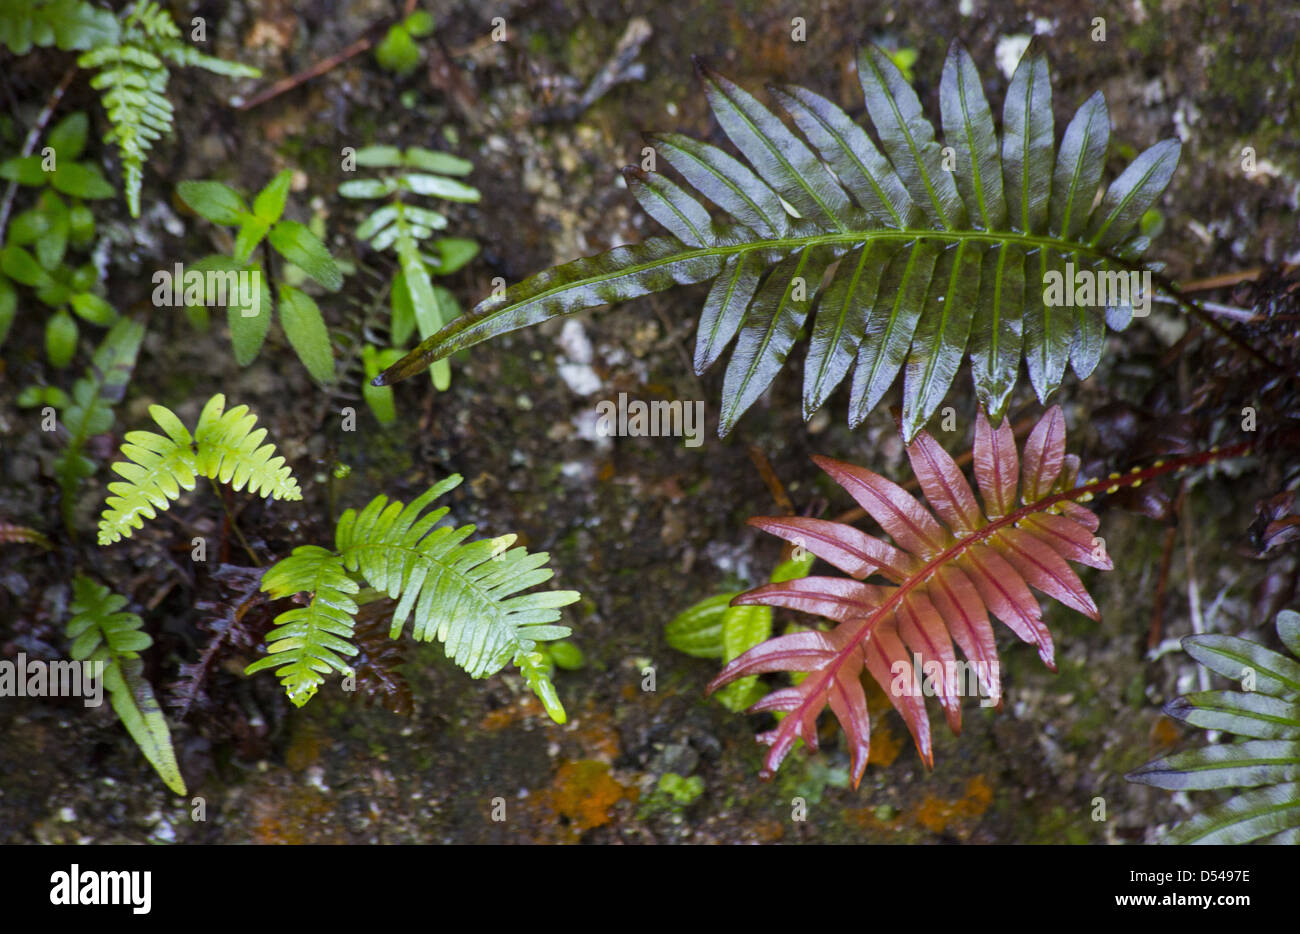 A variety of small fern species growing from a roadside embankment in Fraser's Hill Malaysia - Stock Image